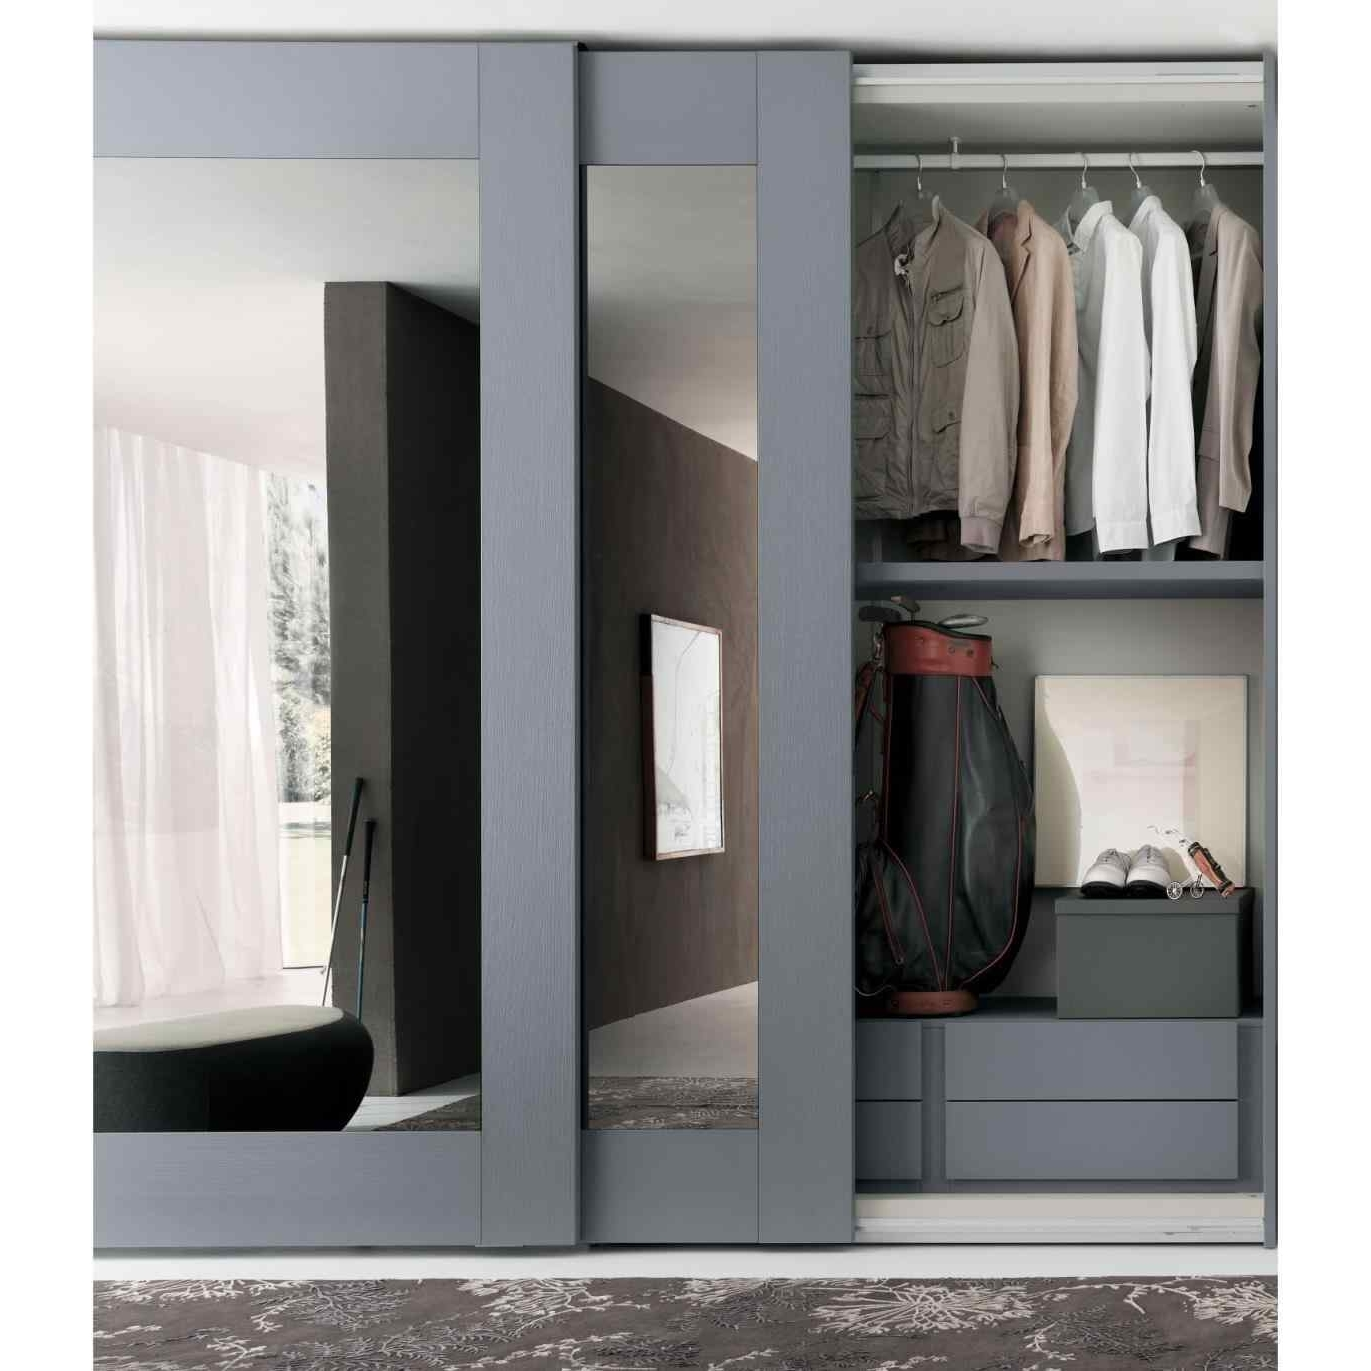 Signature Wardrobes Intended For 2017 Wardrobe & Armoire : And Bronze Signature Built In Wardrobes With (View 10 of 15)